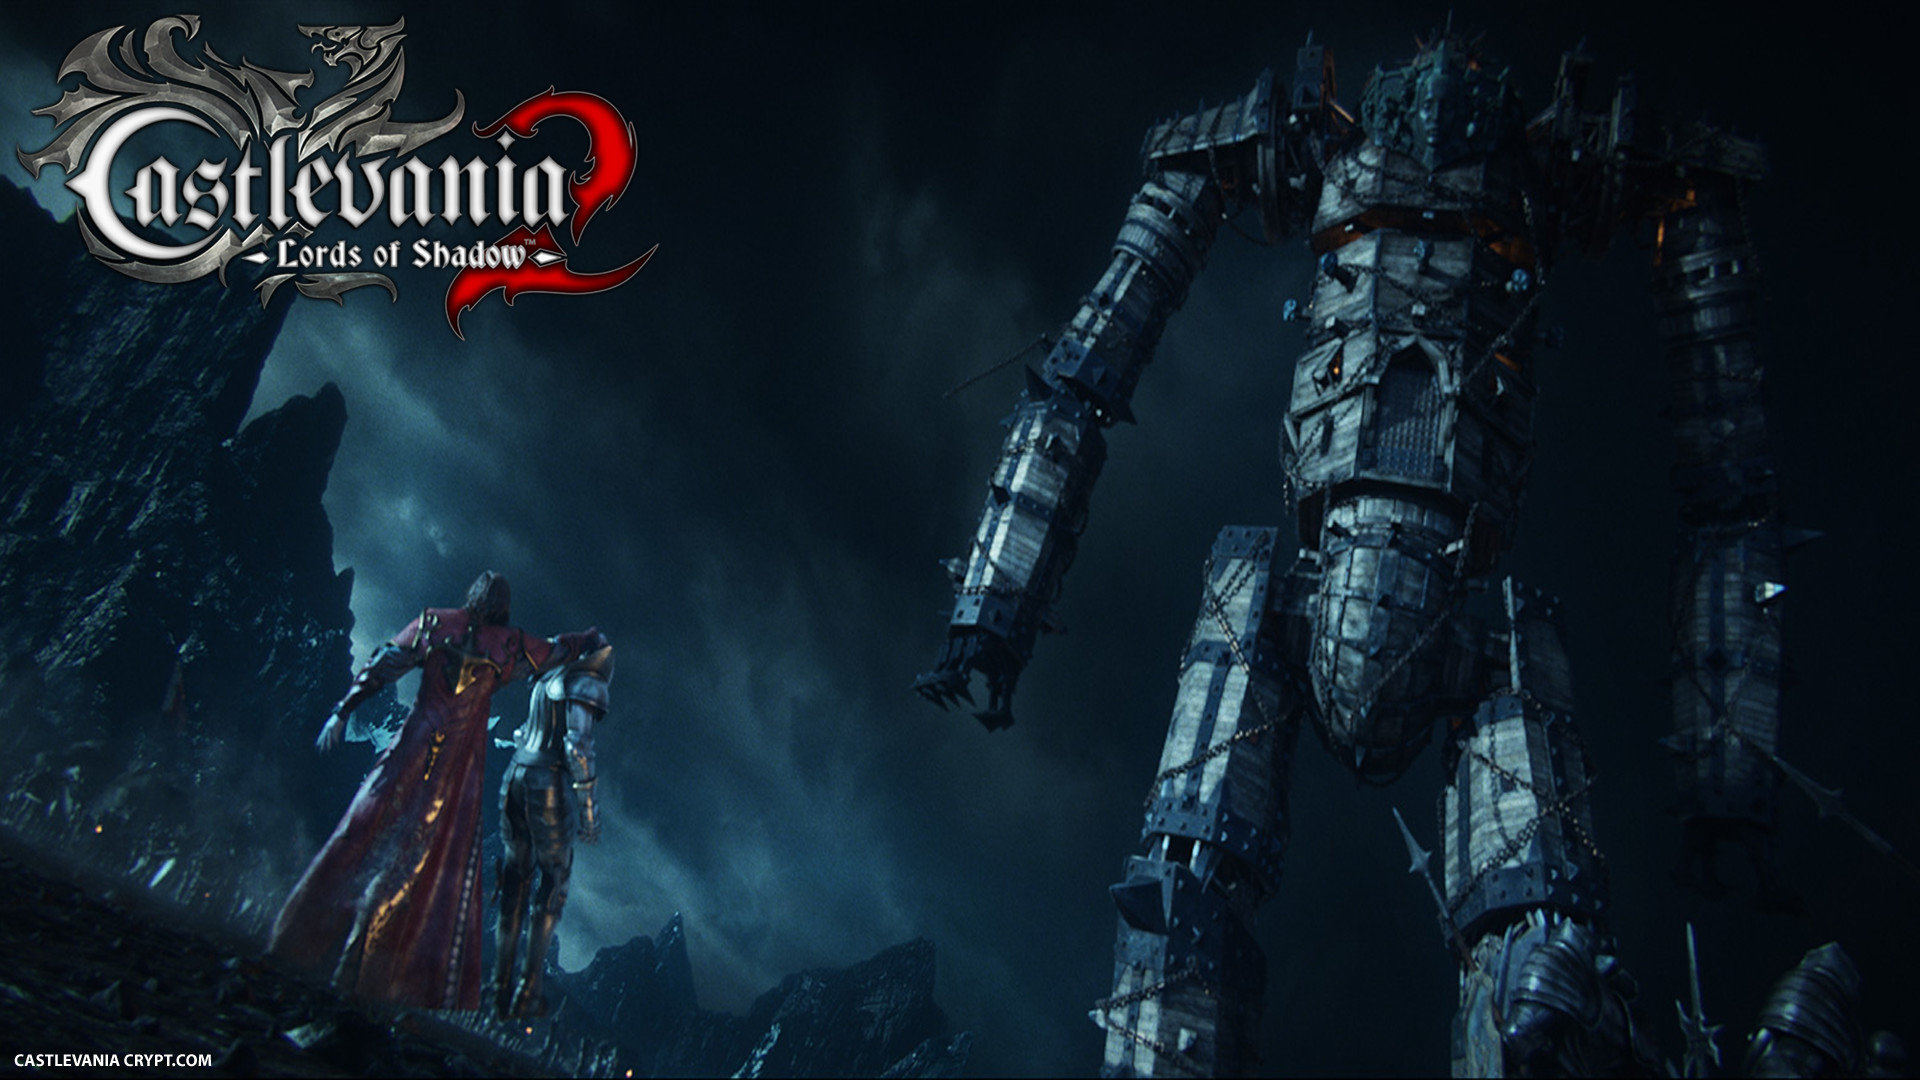 Castlevania Lords Of Shadow 2 Wallpapers 1920x1080 Full Hd 1080p